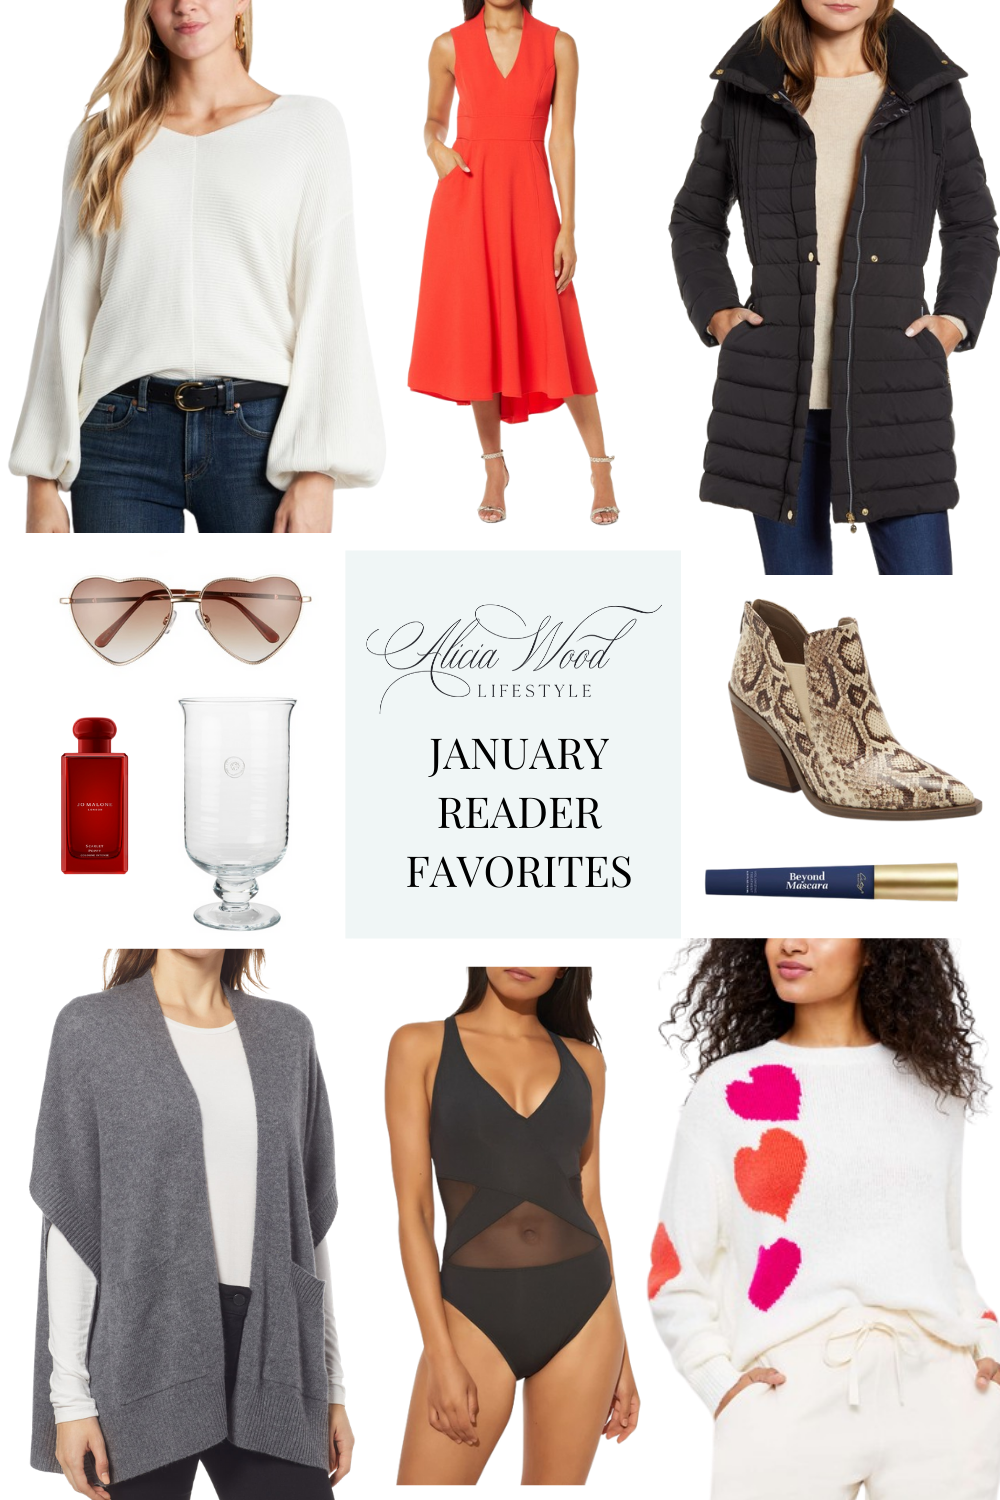 Top 25 January 2021 Reader Favorites